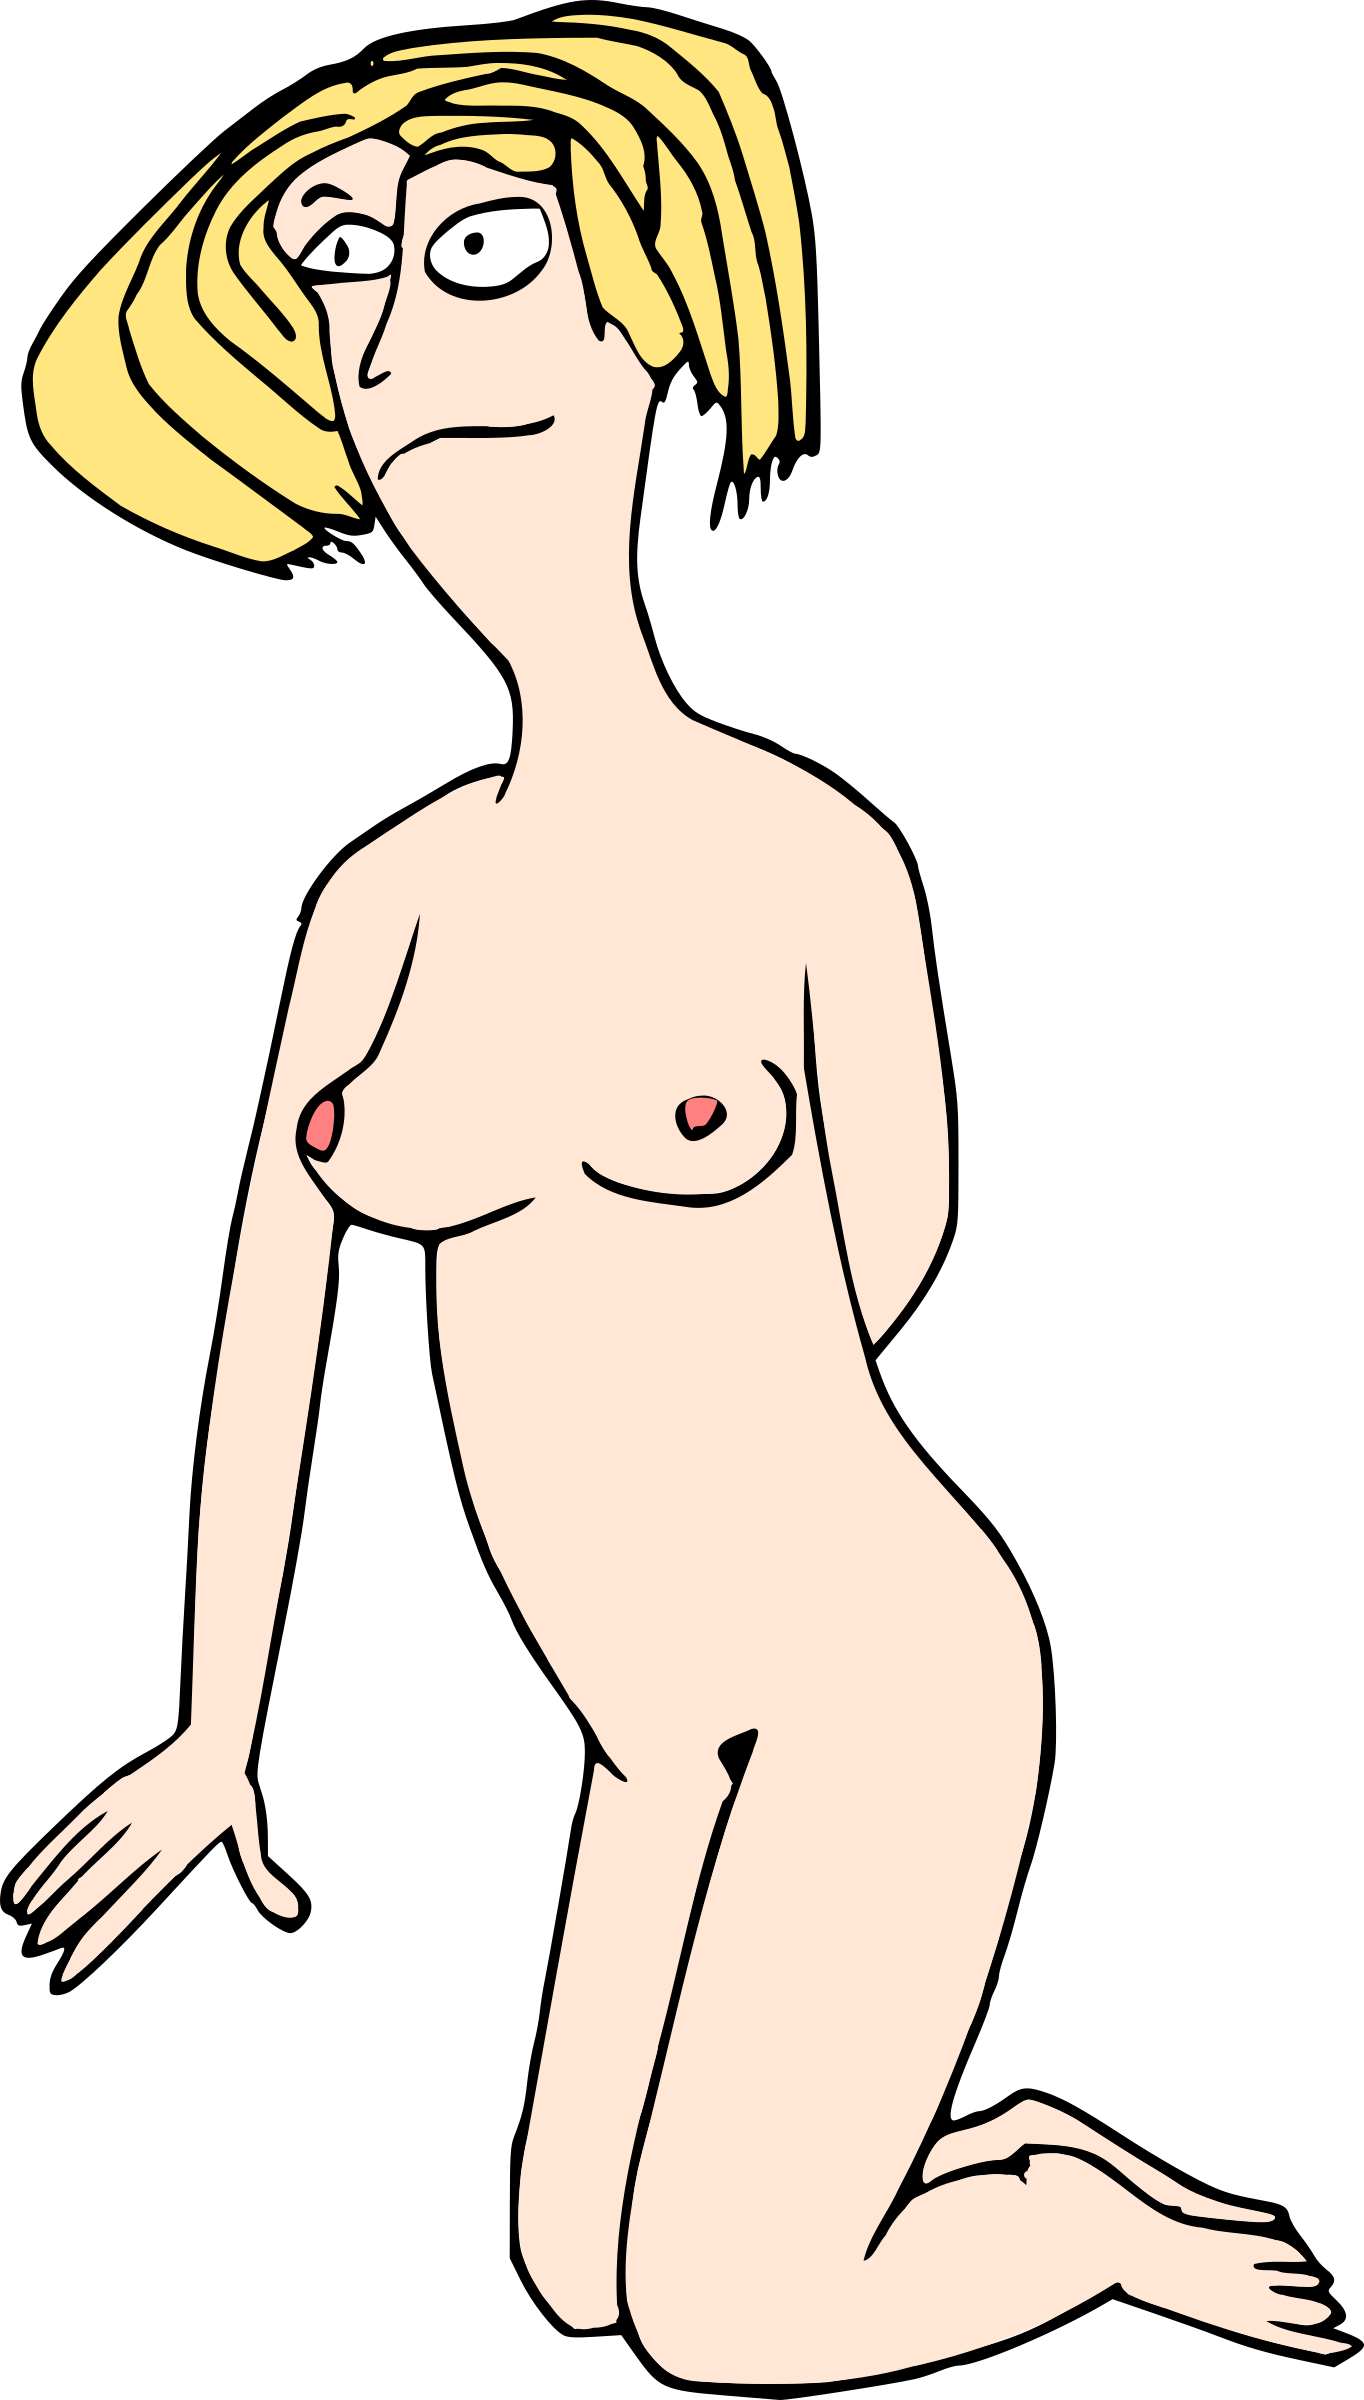 Woman Nude 3 by doodleguy